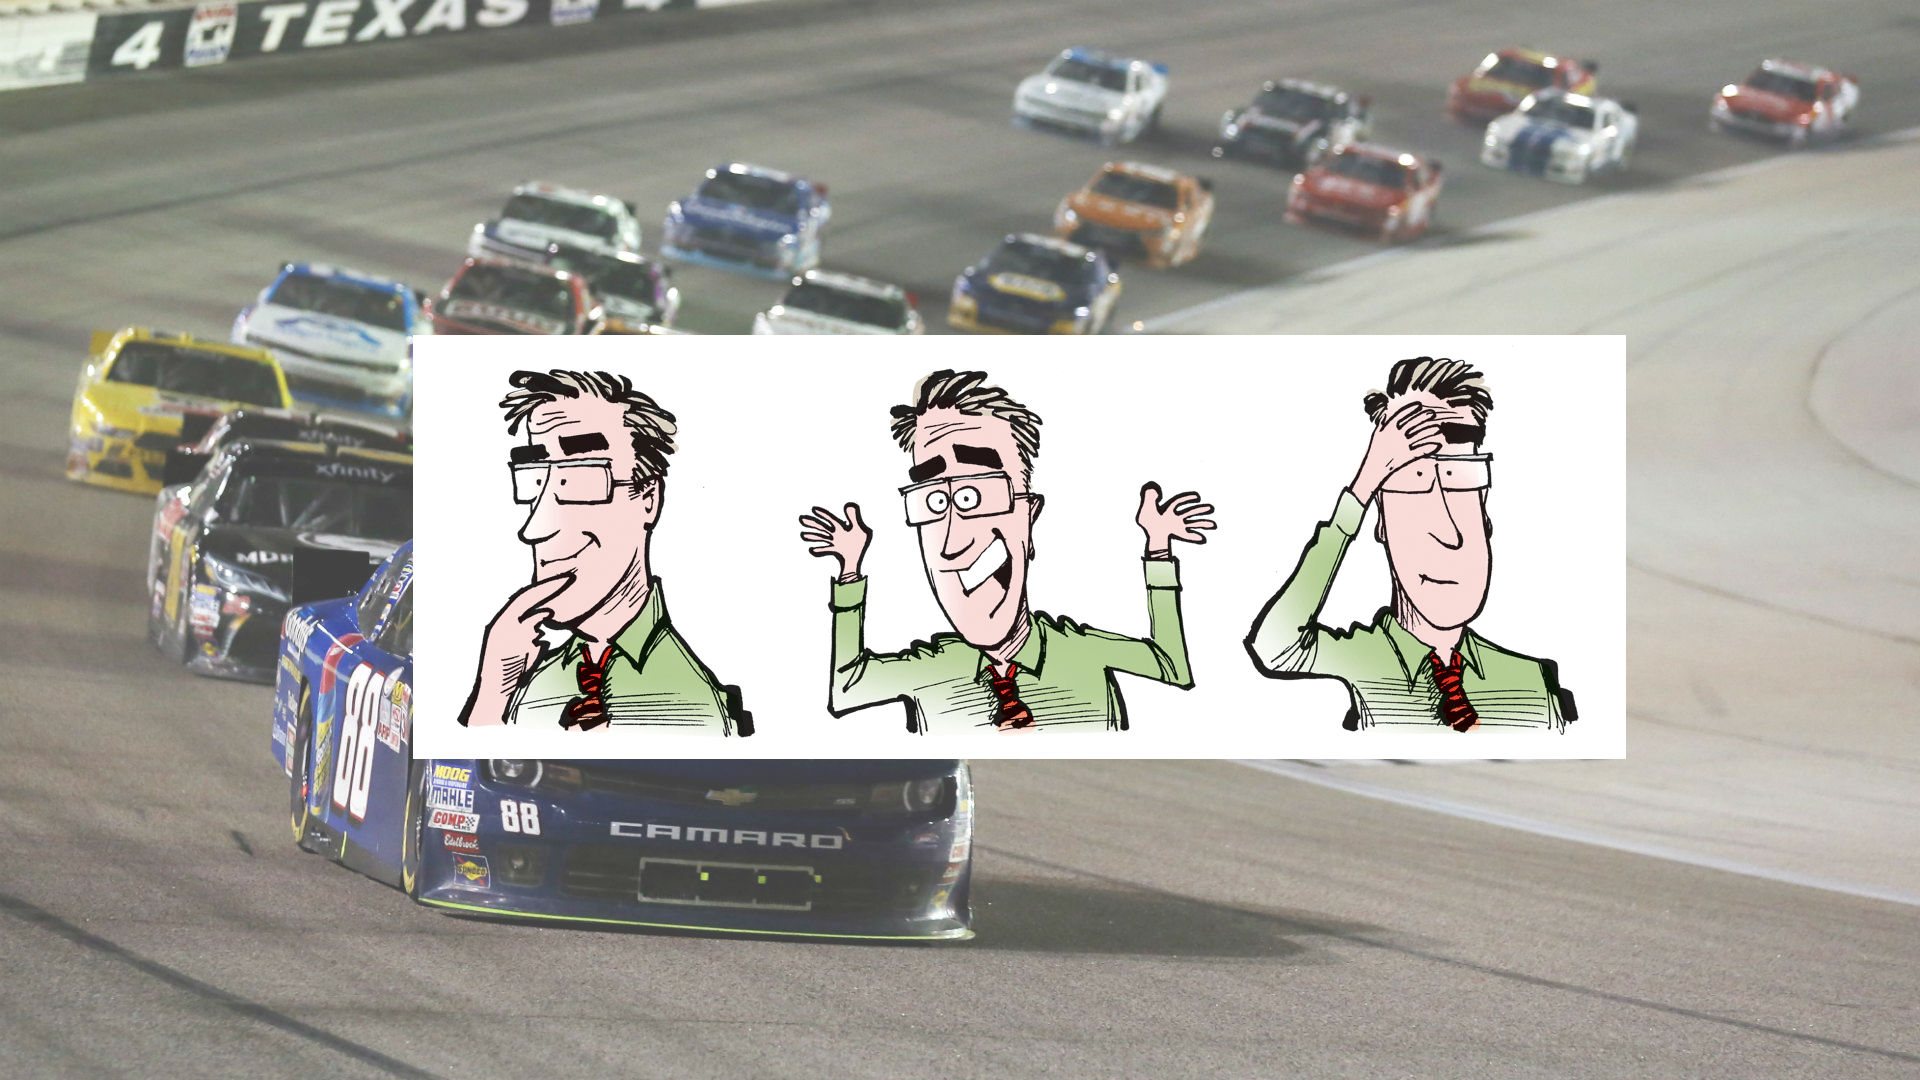 Q&A with Mike Smith of StockCartoons: From rental cars to Sprint Cup cars